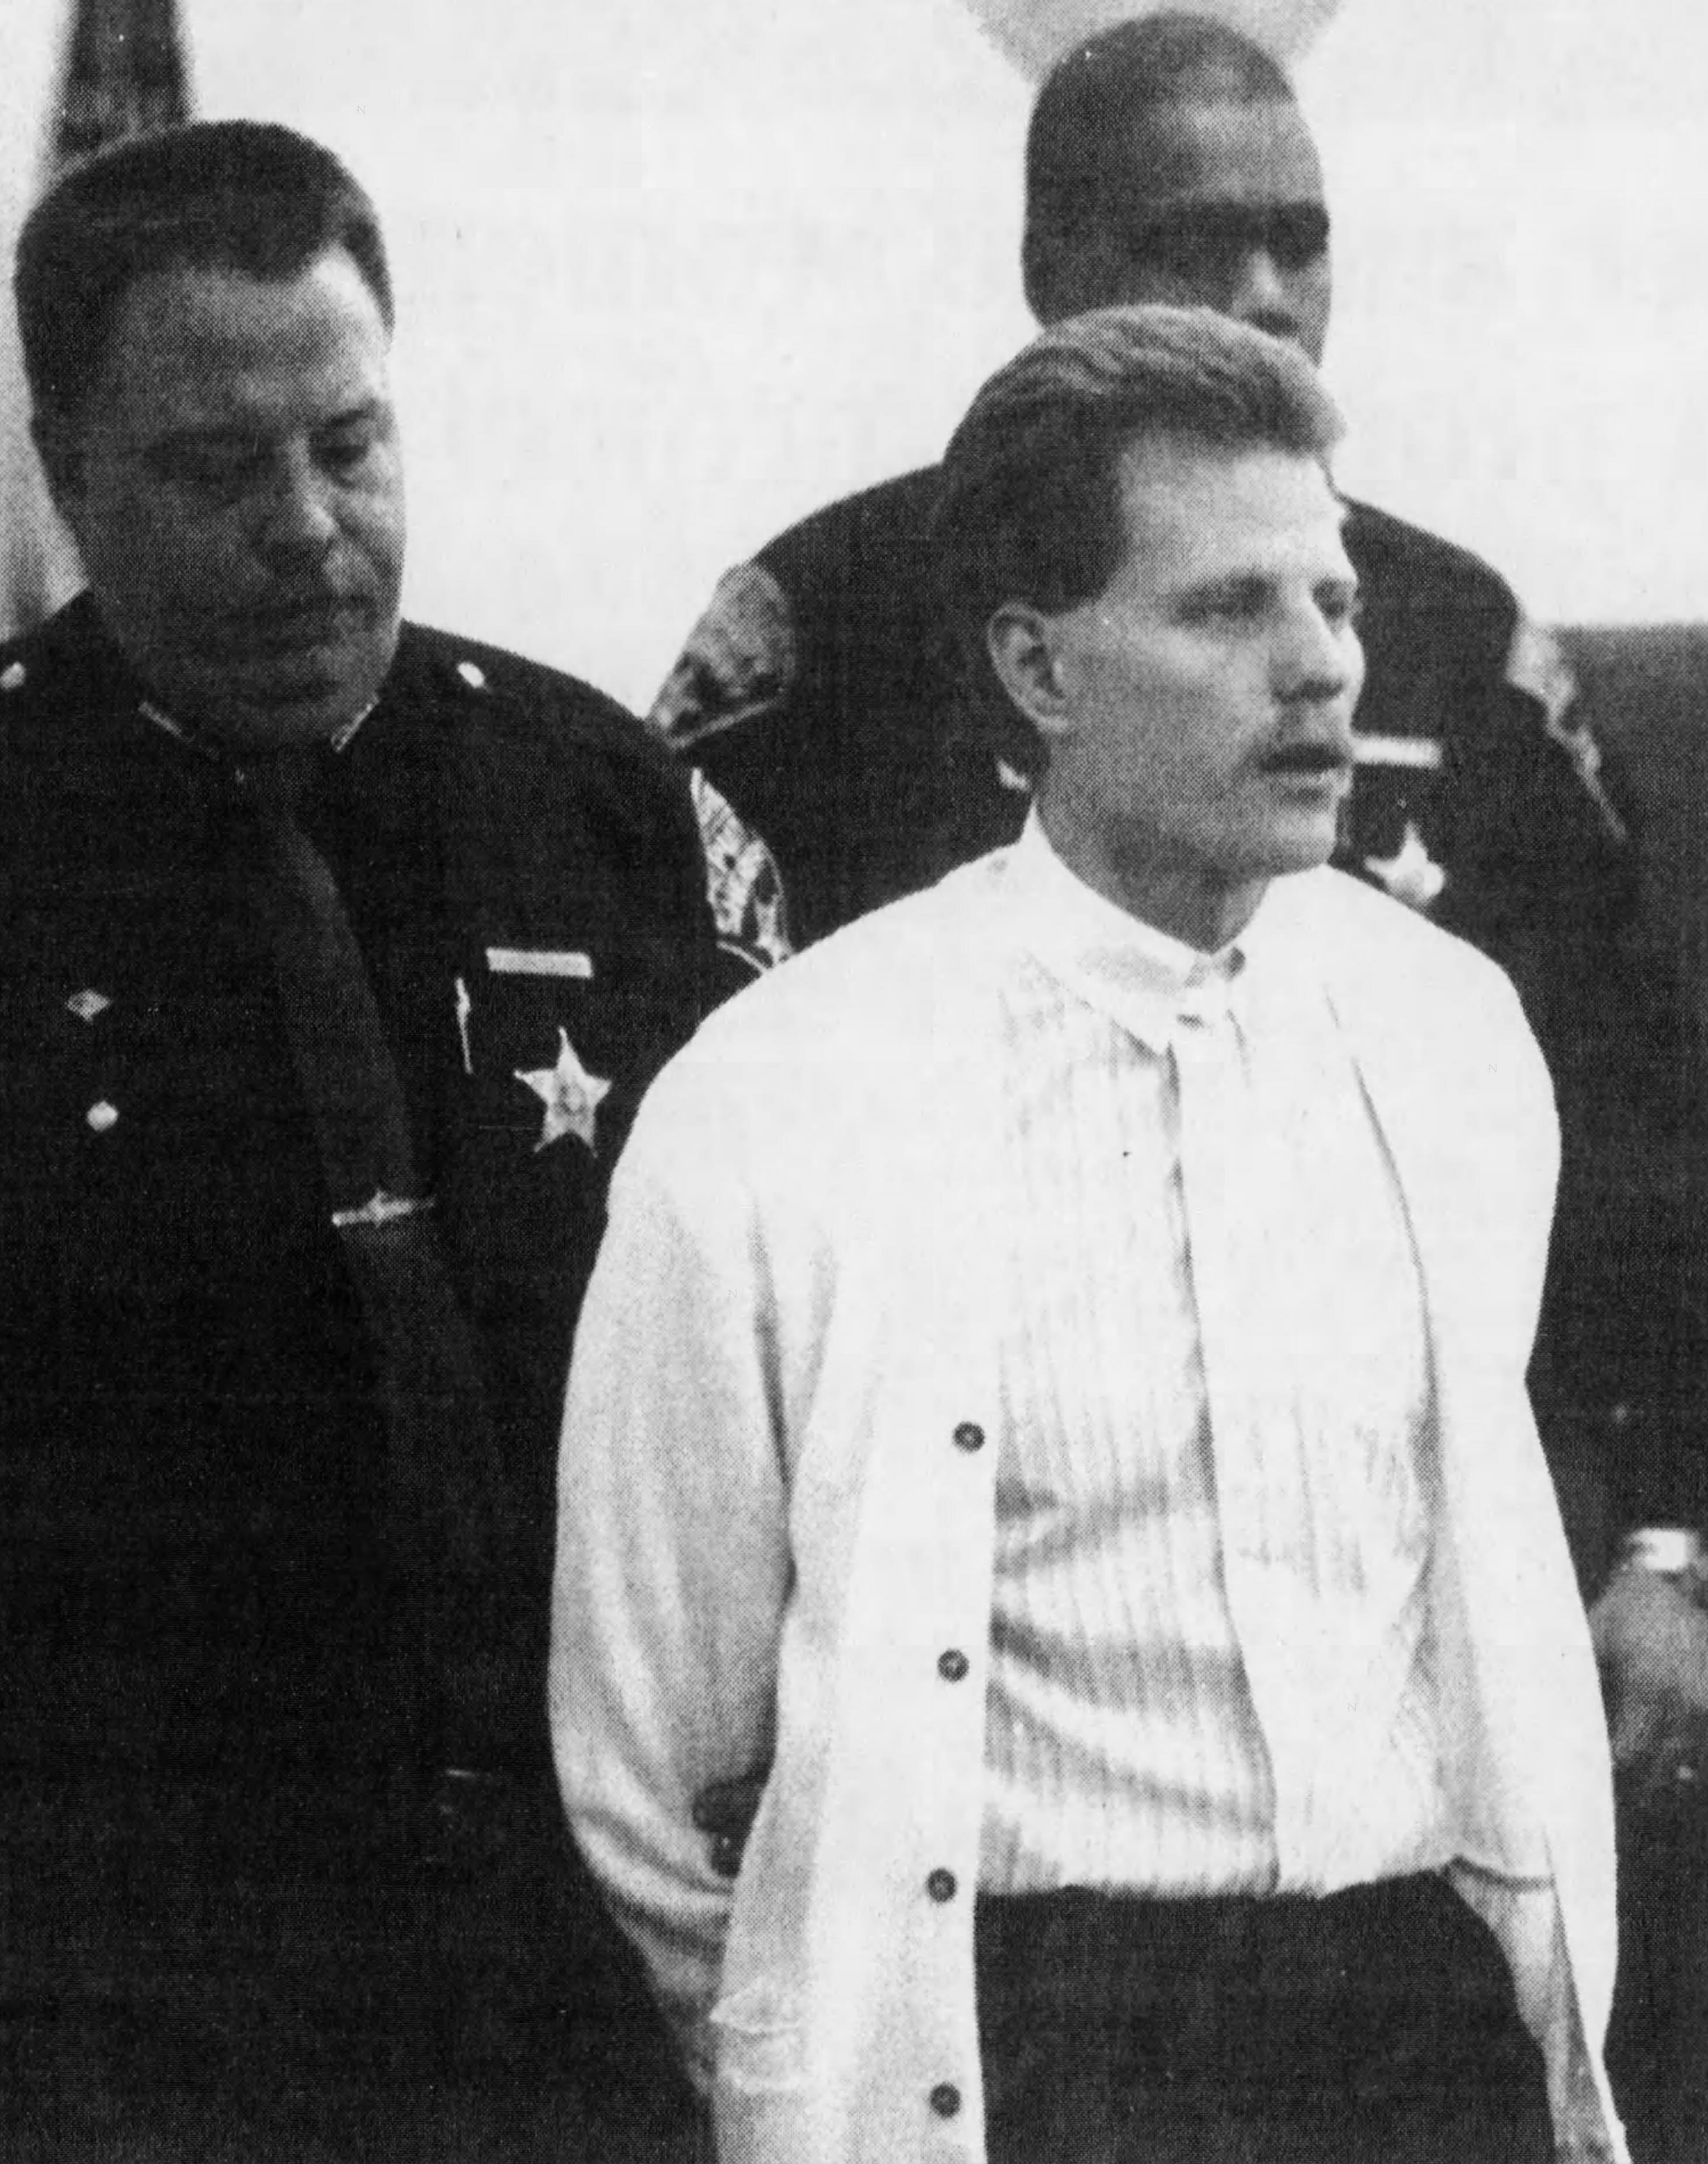 Jeffrey Wogenstahl being led into the courtroom on the day of his sentencing in February 1993.